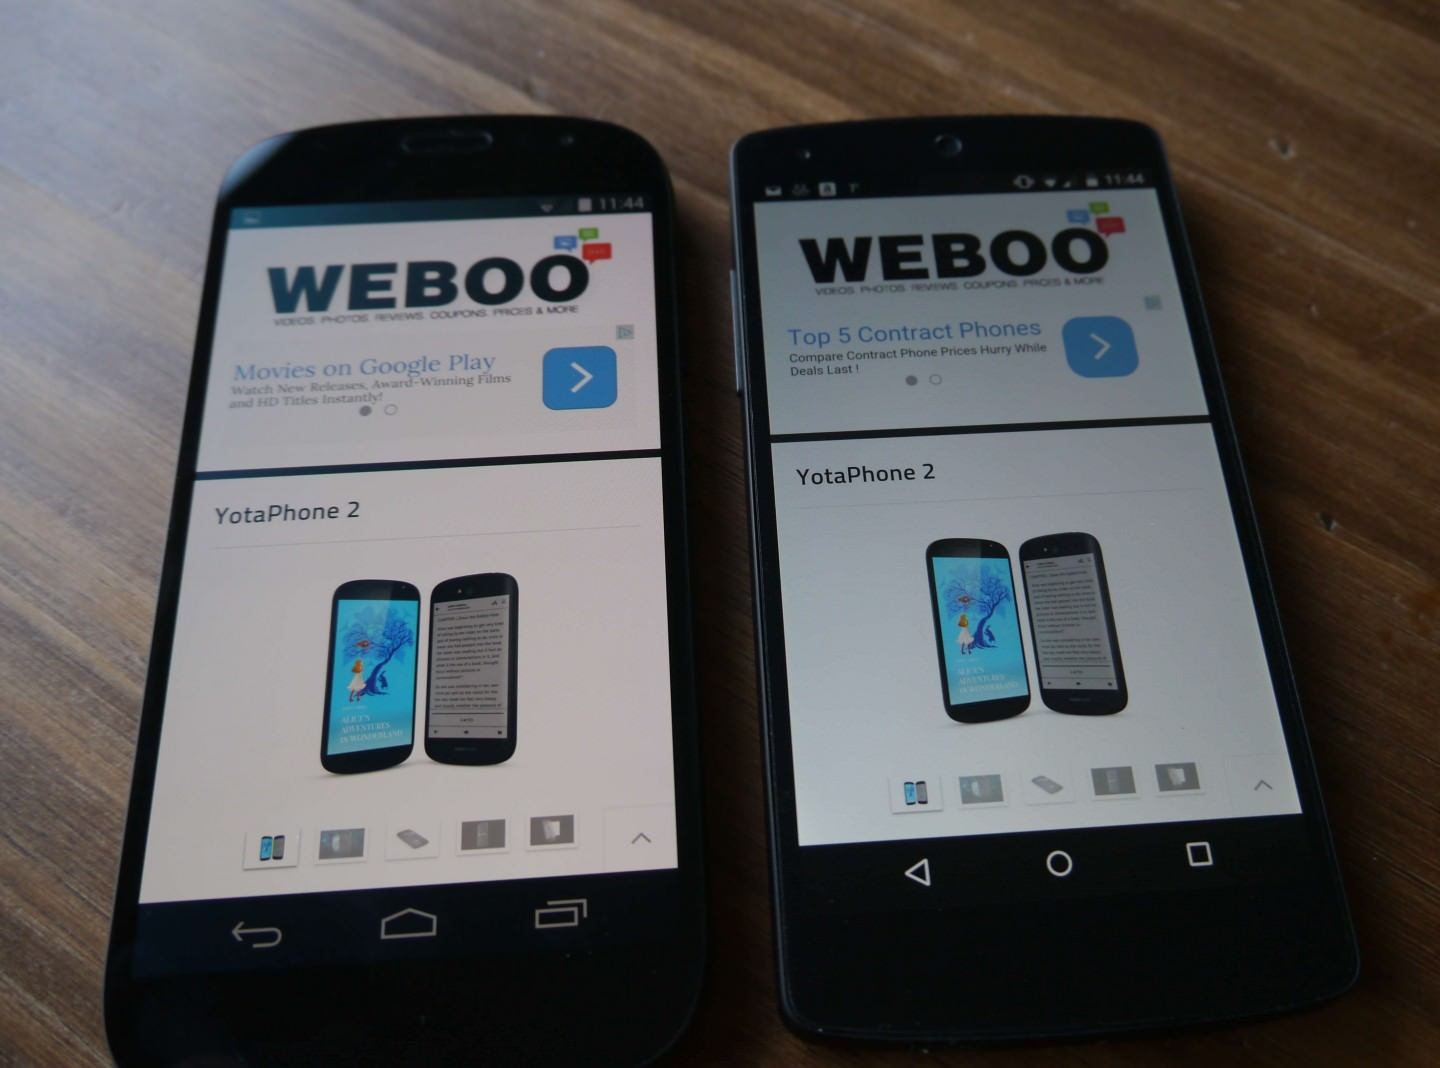 yotaphone-2-review-display-weboo-co-3